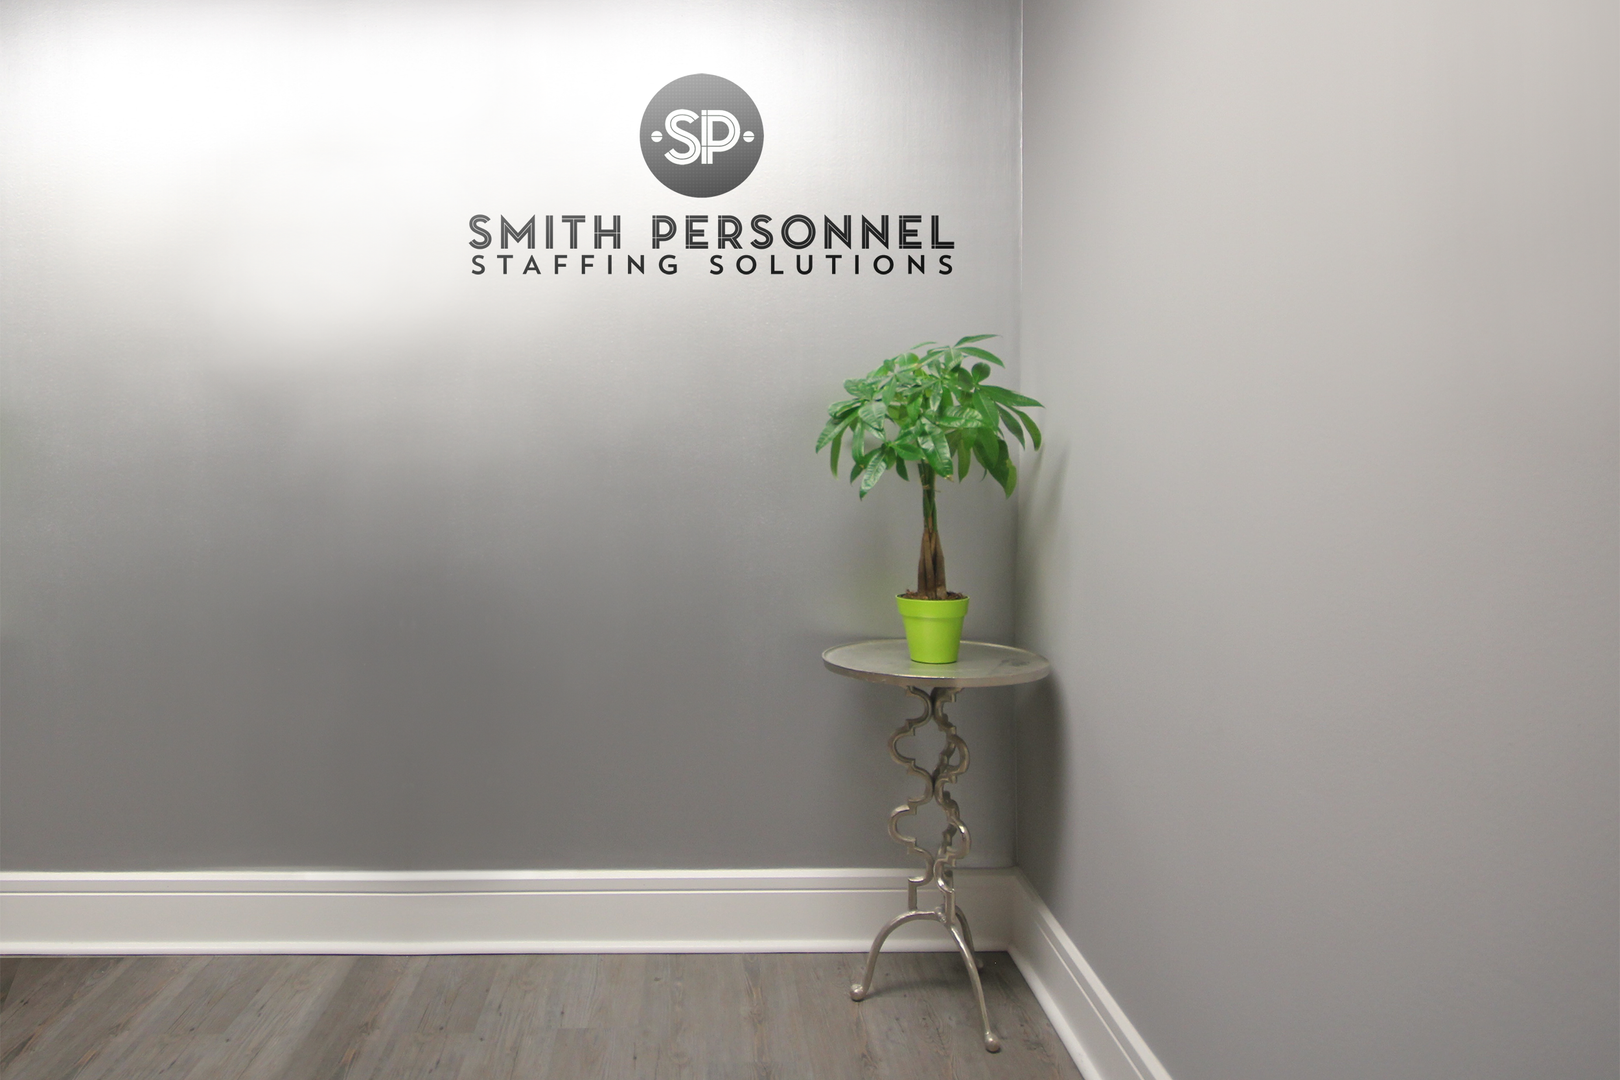 Smith Personnel Marketing Photo